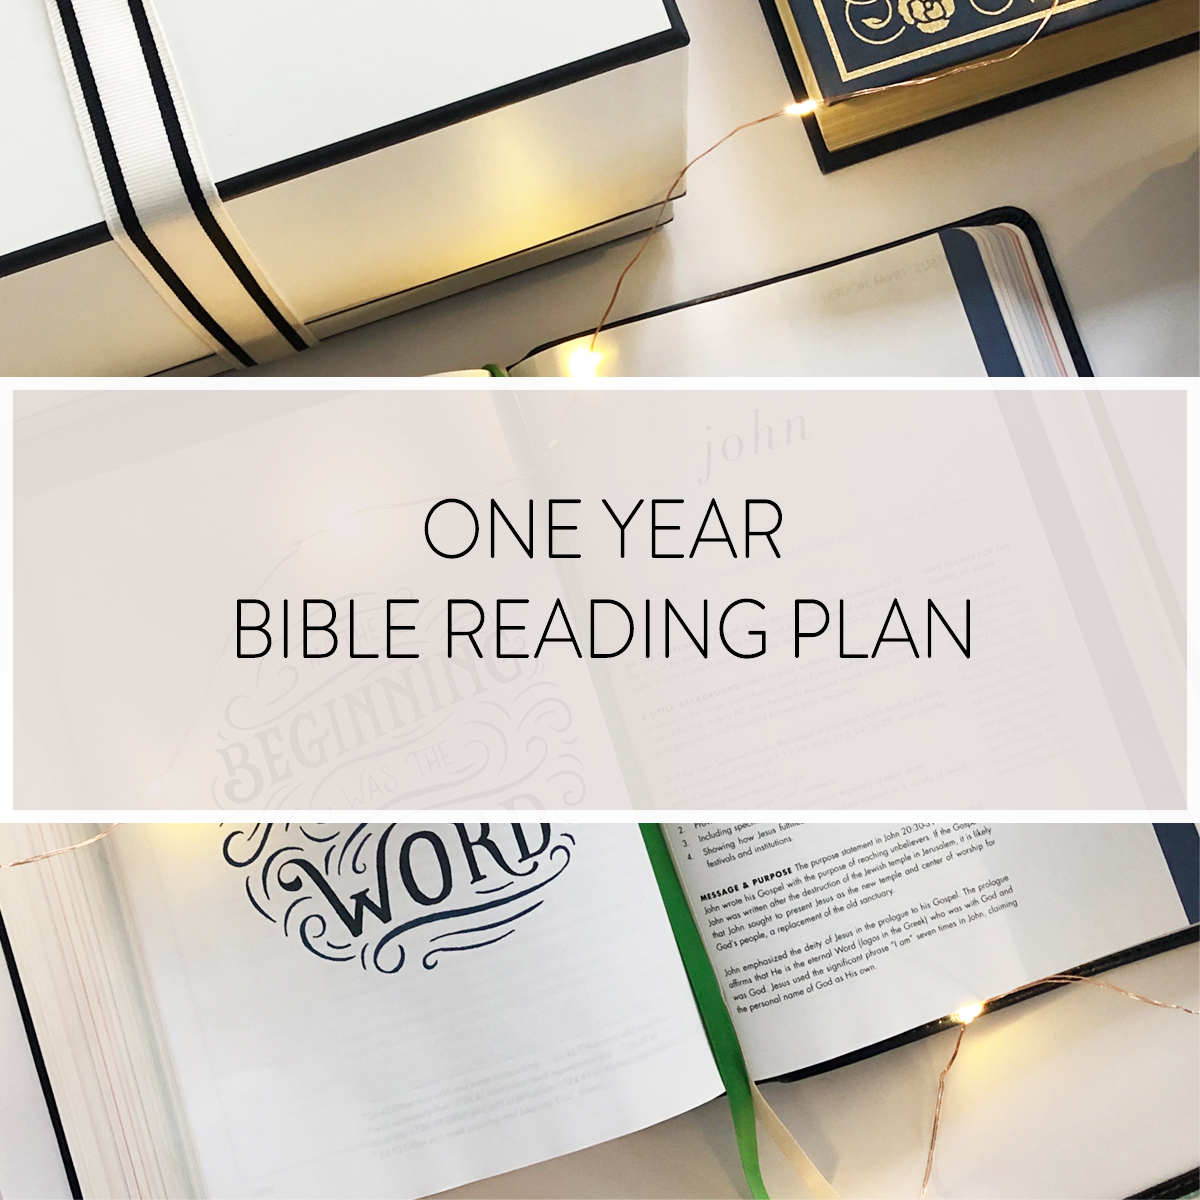 Looking for a One Year Bible Reading Plan? We've got one for you!